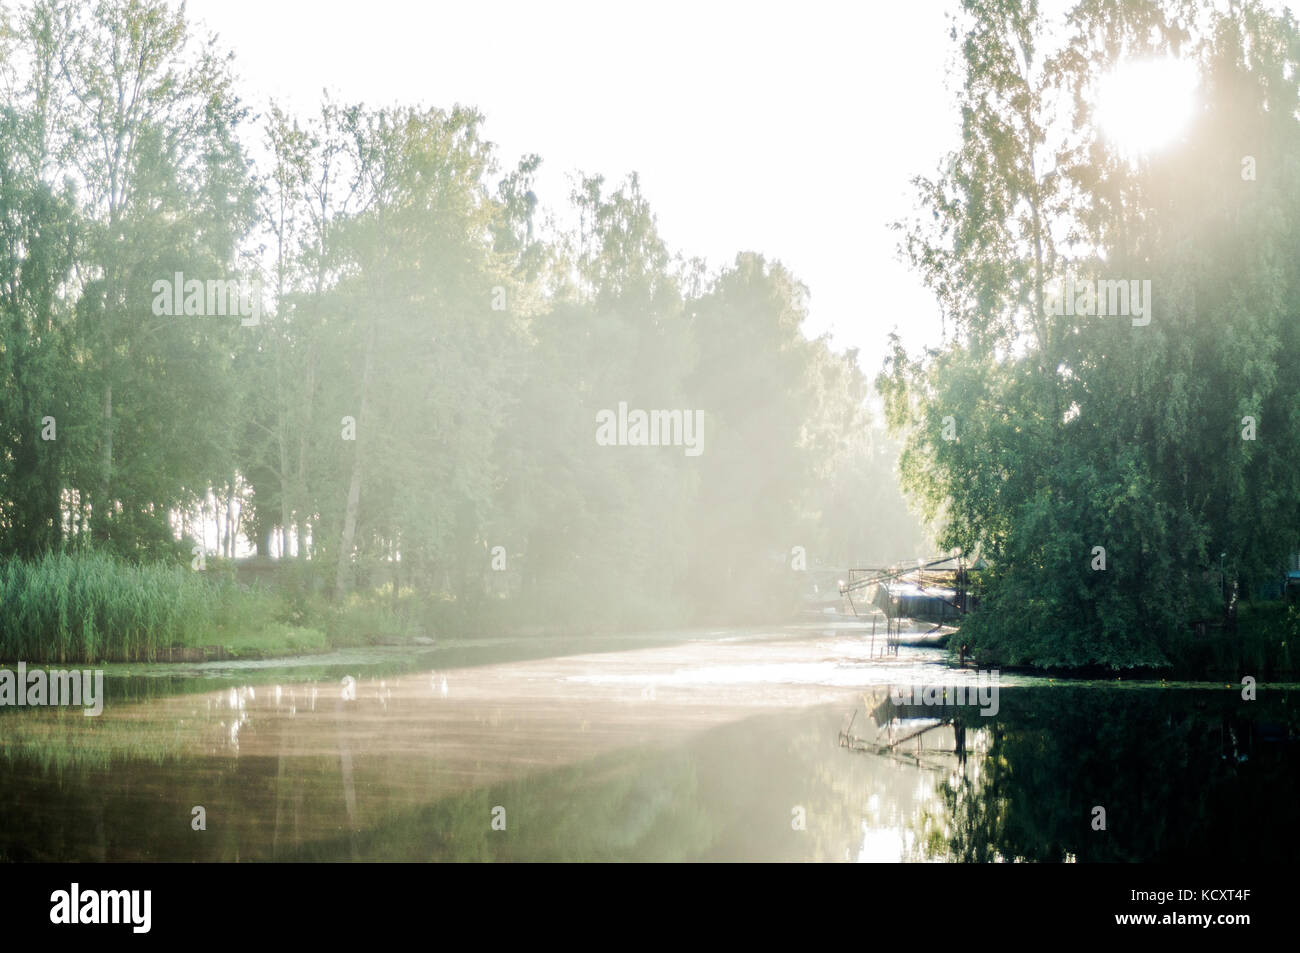 Sun rays trough birch branches. Reflections on river surface. Little  harbor. - Stock Image